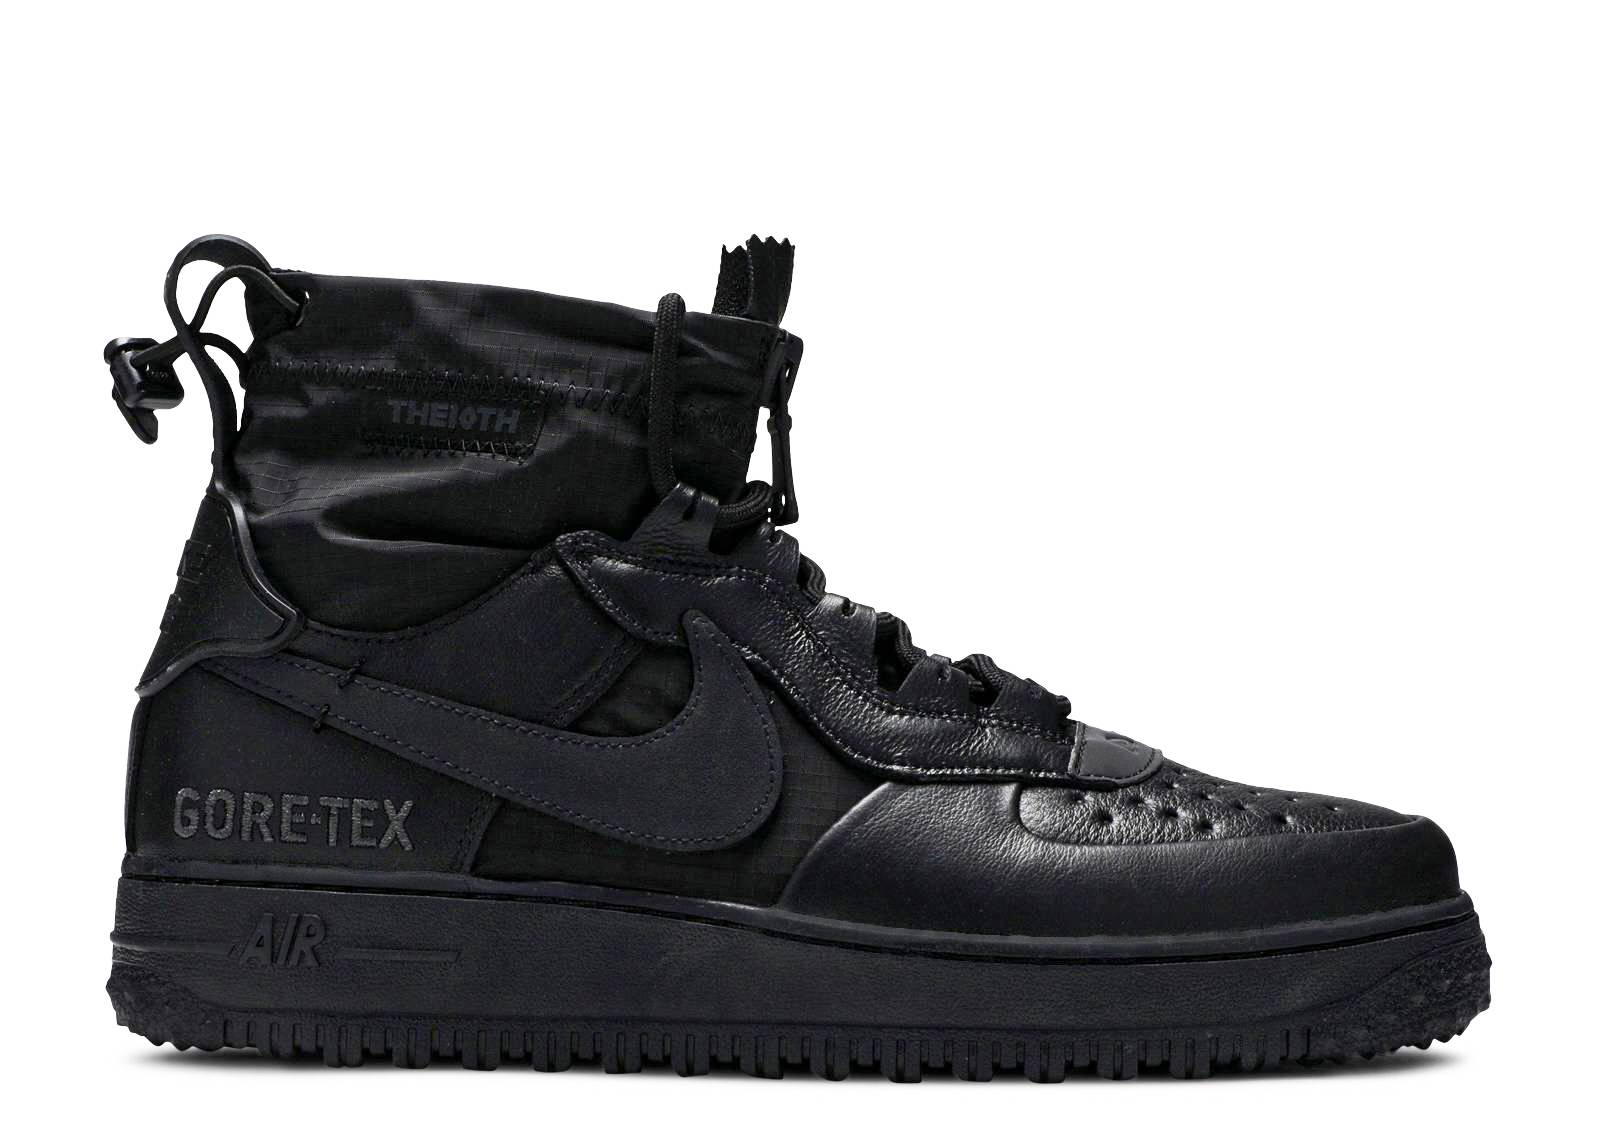 air force 1 gore